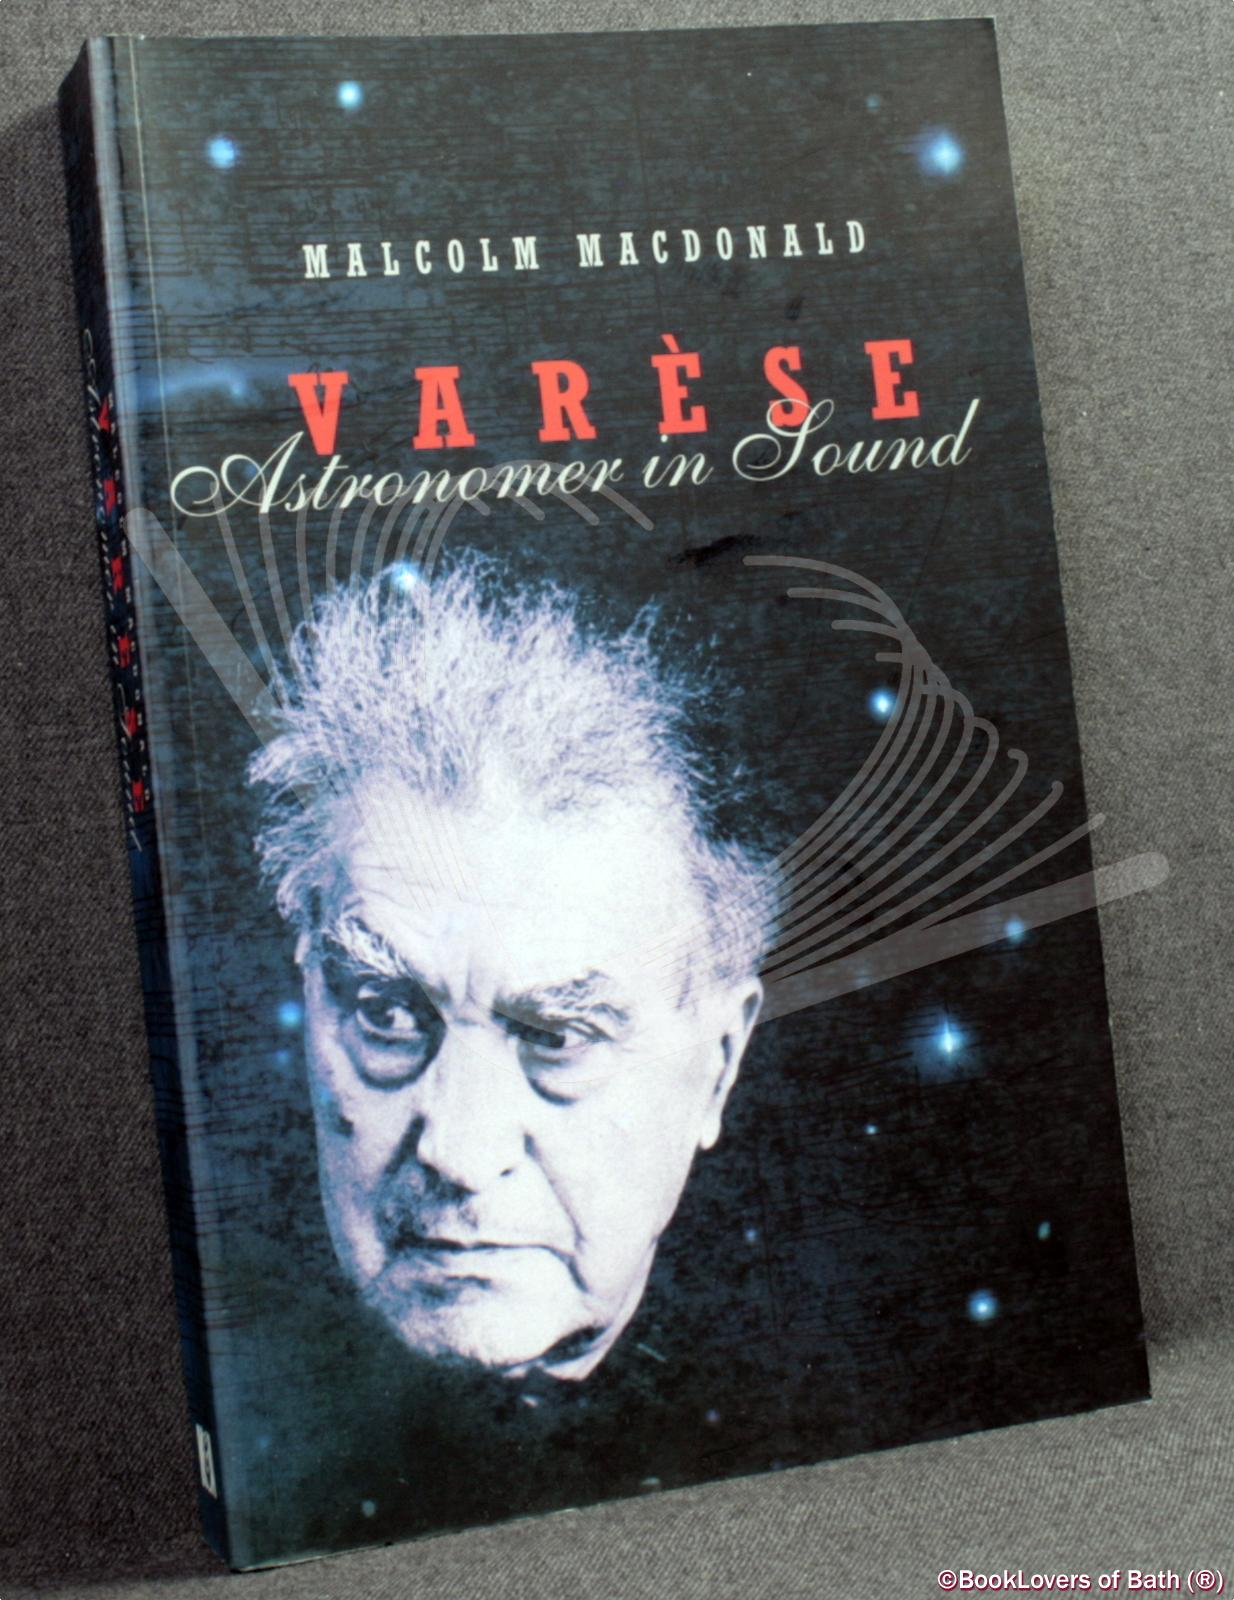 Varese: Astronomer in Sound - Malcolm Macdonald